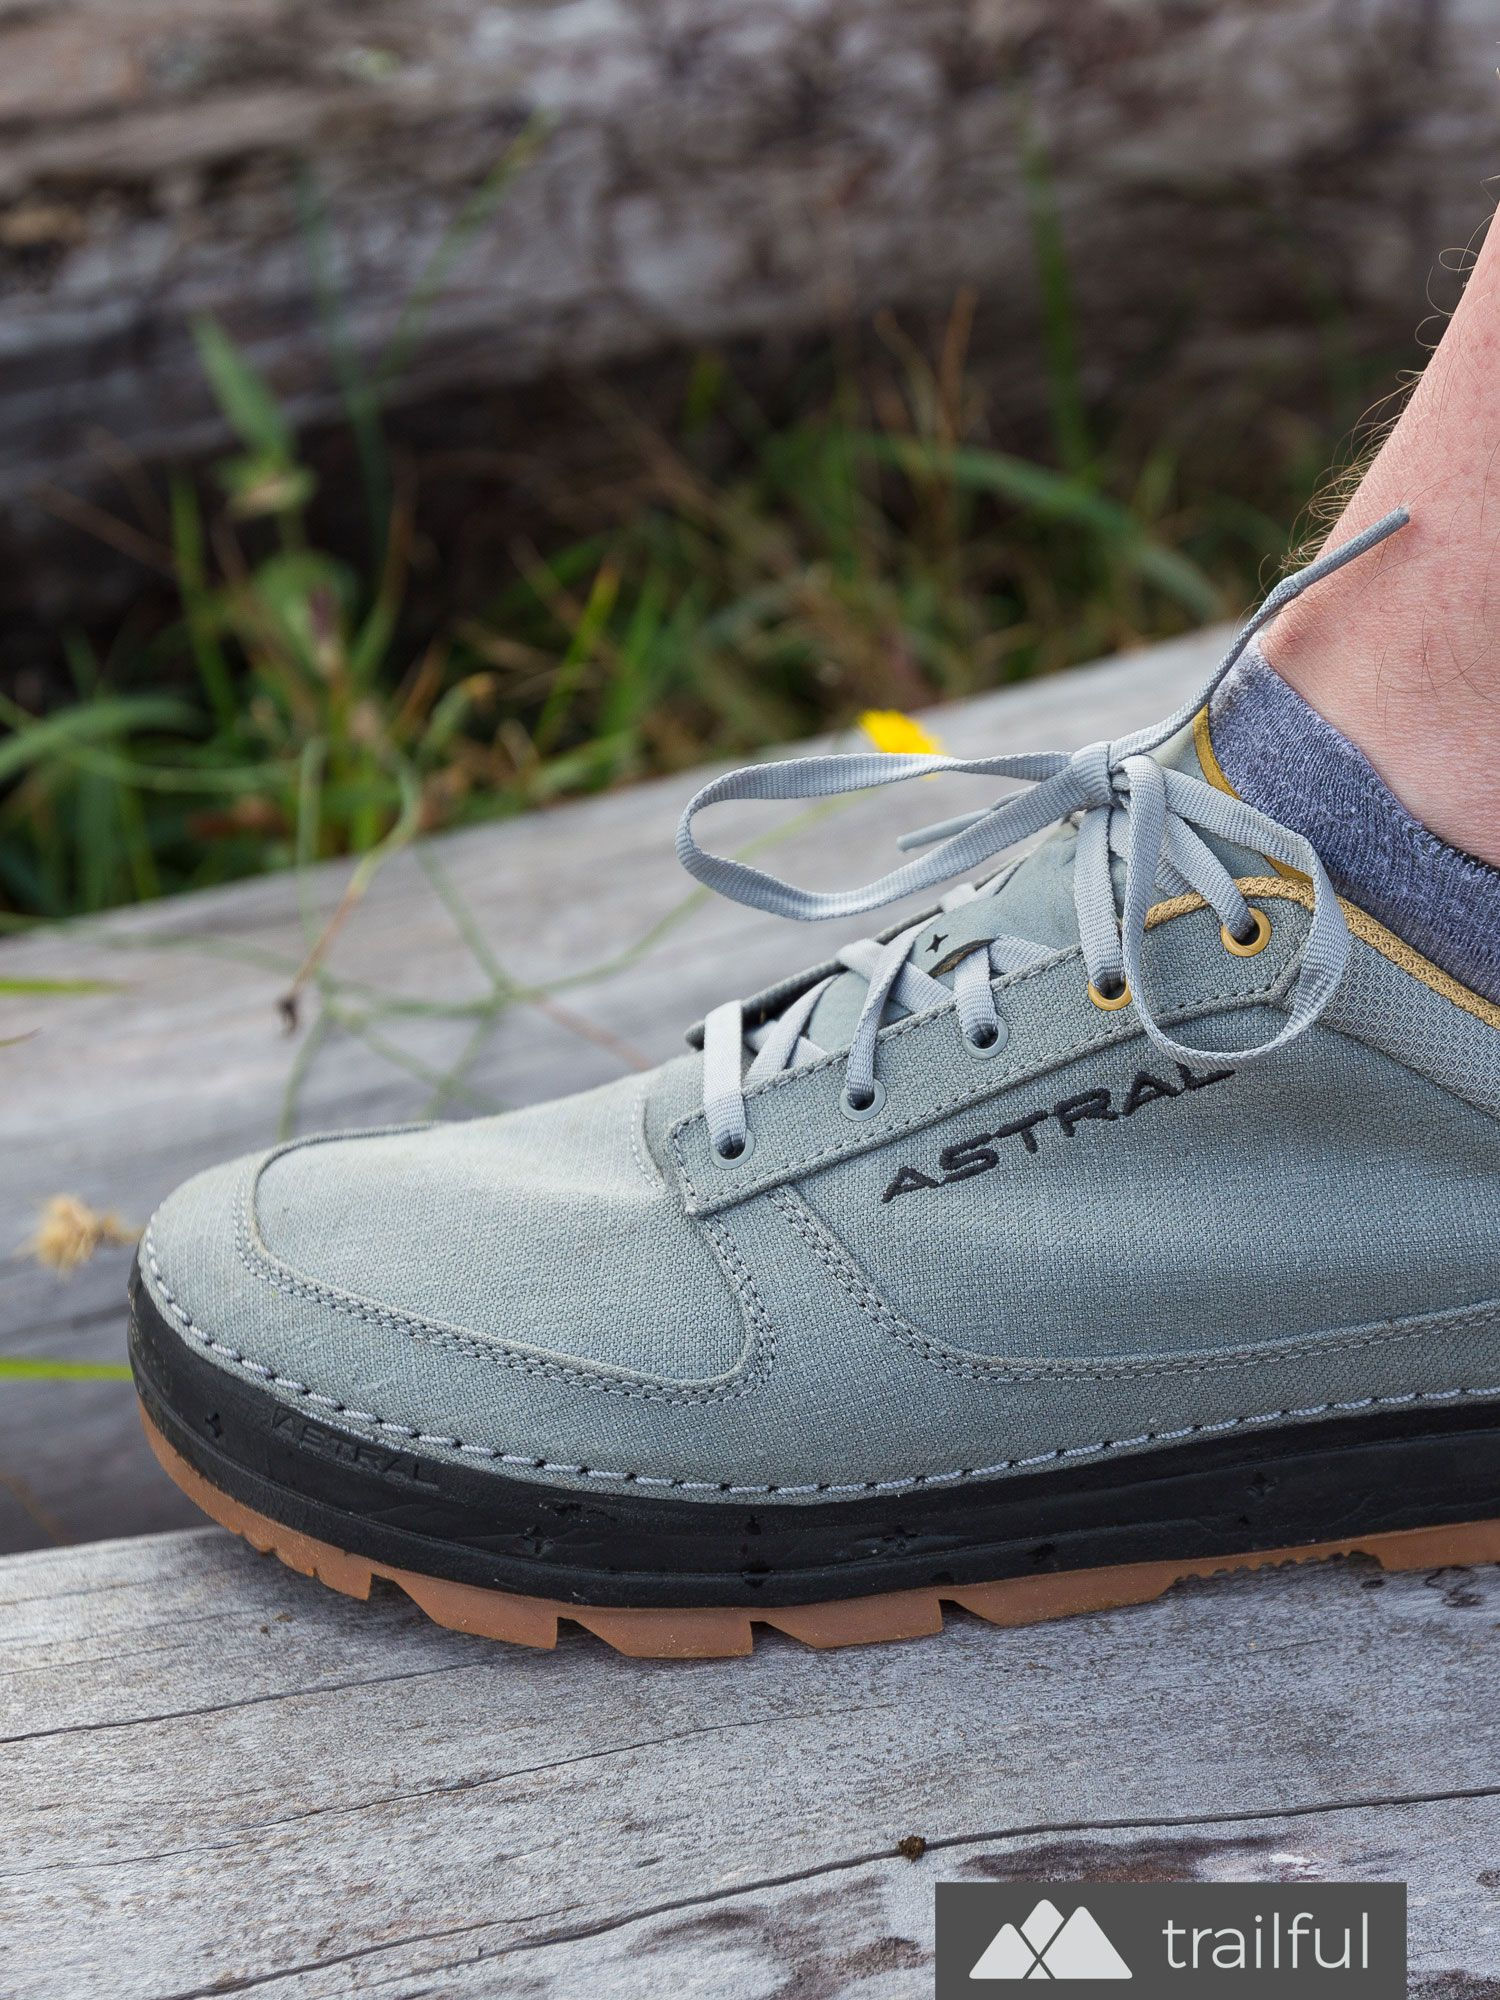 0f97de0e46df Our Astral Donner hemp hiking shoe review  comfortable